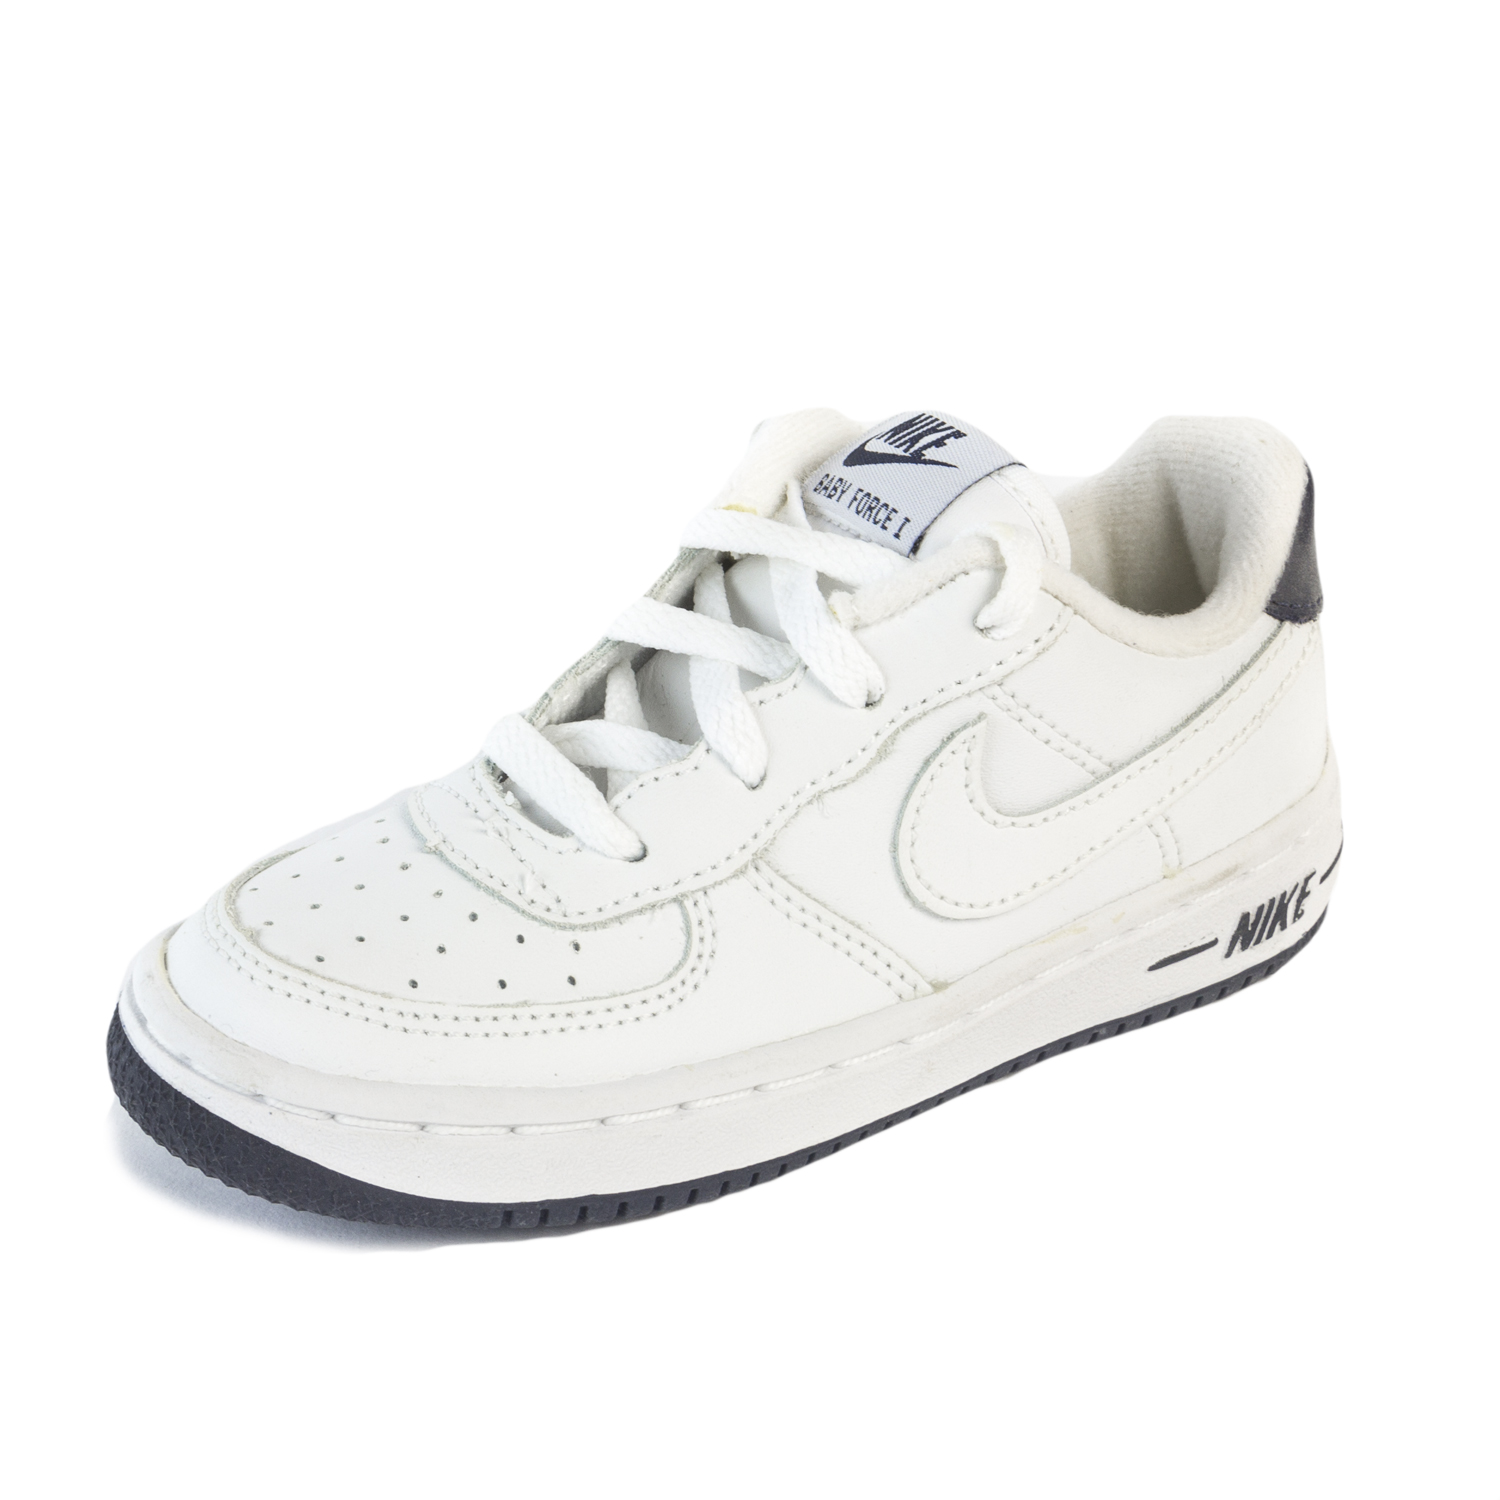 huge selection of ce499 f1865 Details about NIKE Toddler White Obsidian Baby Force 1 Sneakers 624046 Sz  9c  40 NIB